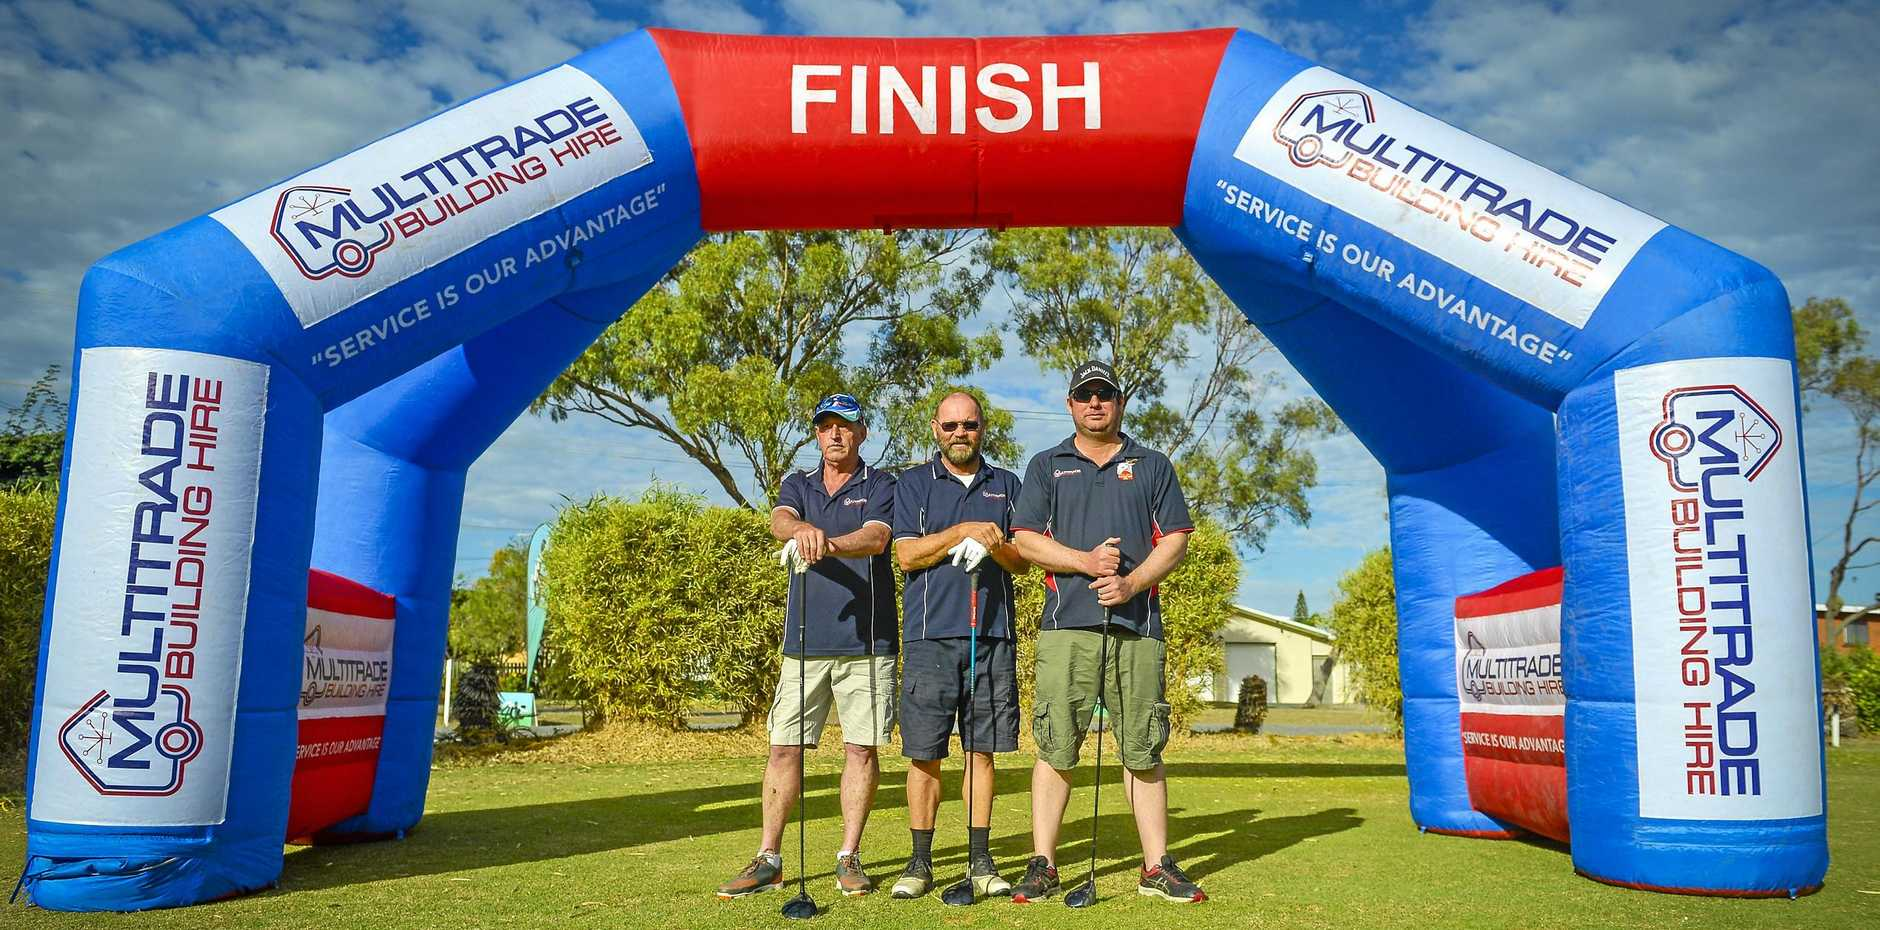 The staff from Multitrade Building Hire, the major sponsor of The Rotary Club of South Gladstone's golf charity day.